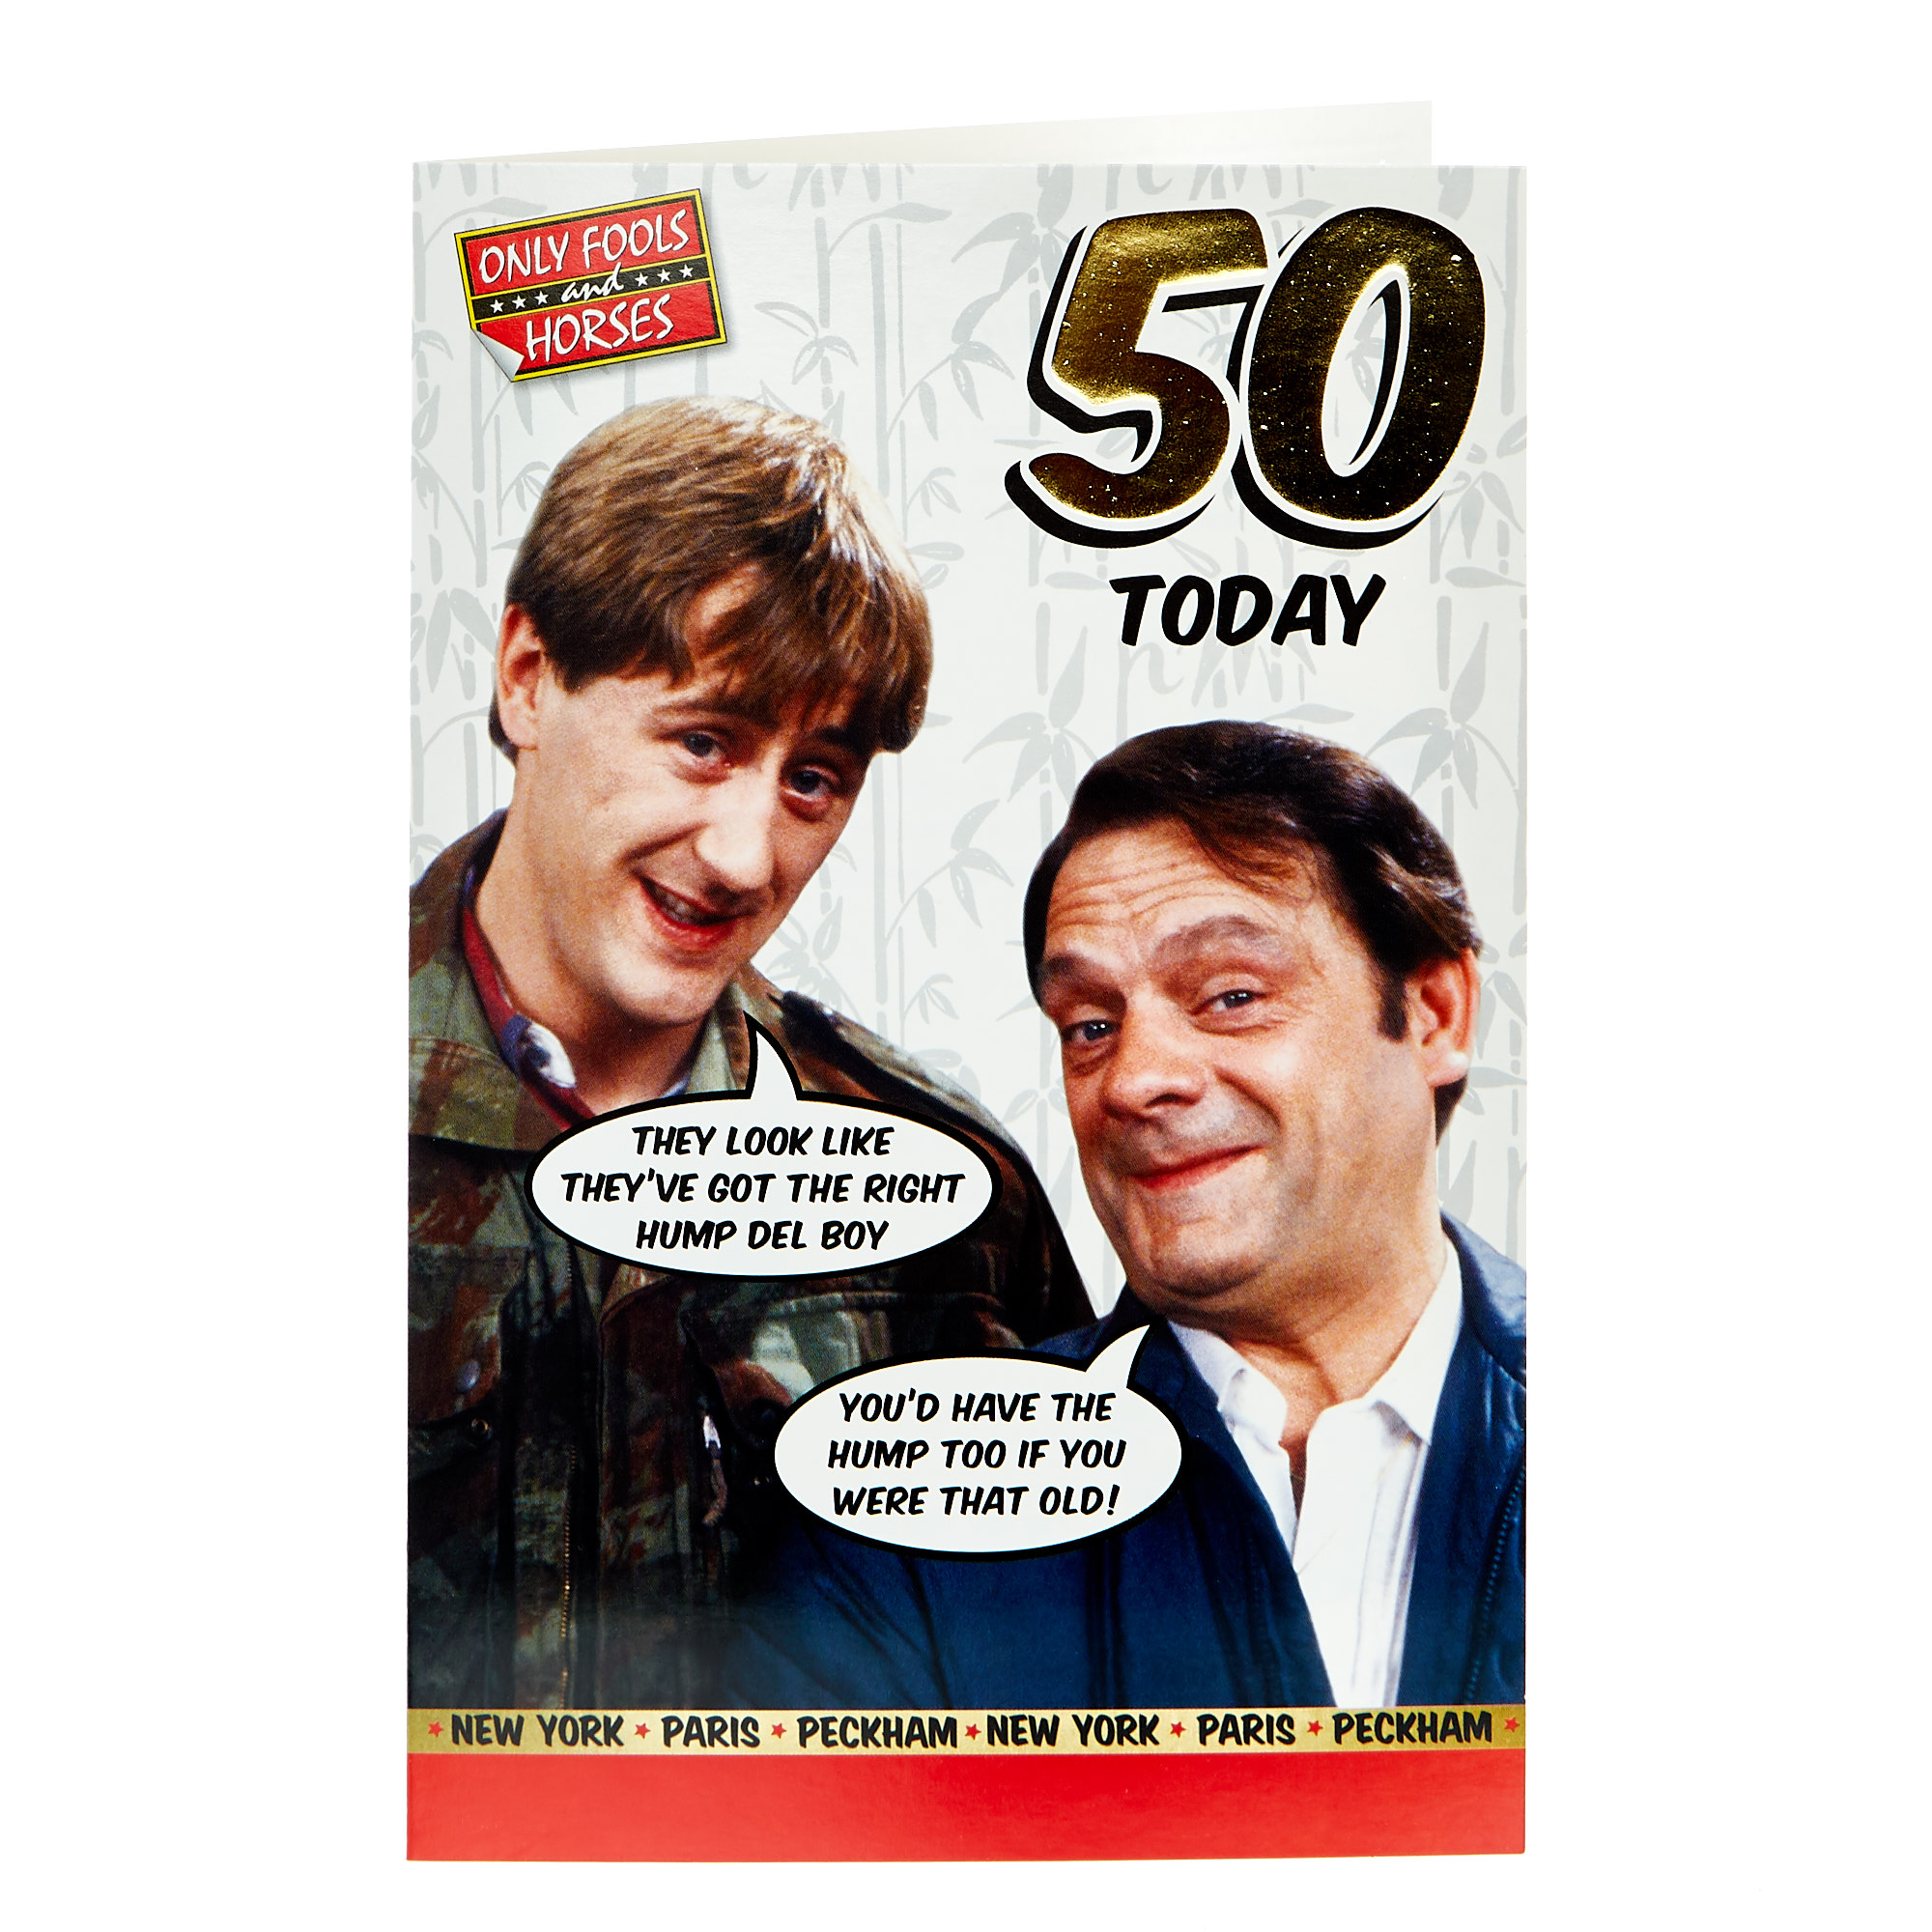 Only Fools & Horses 50th Birthday Card